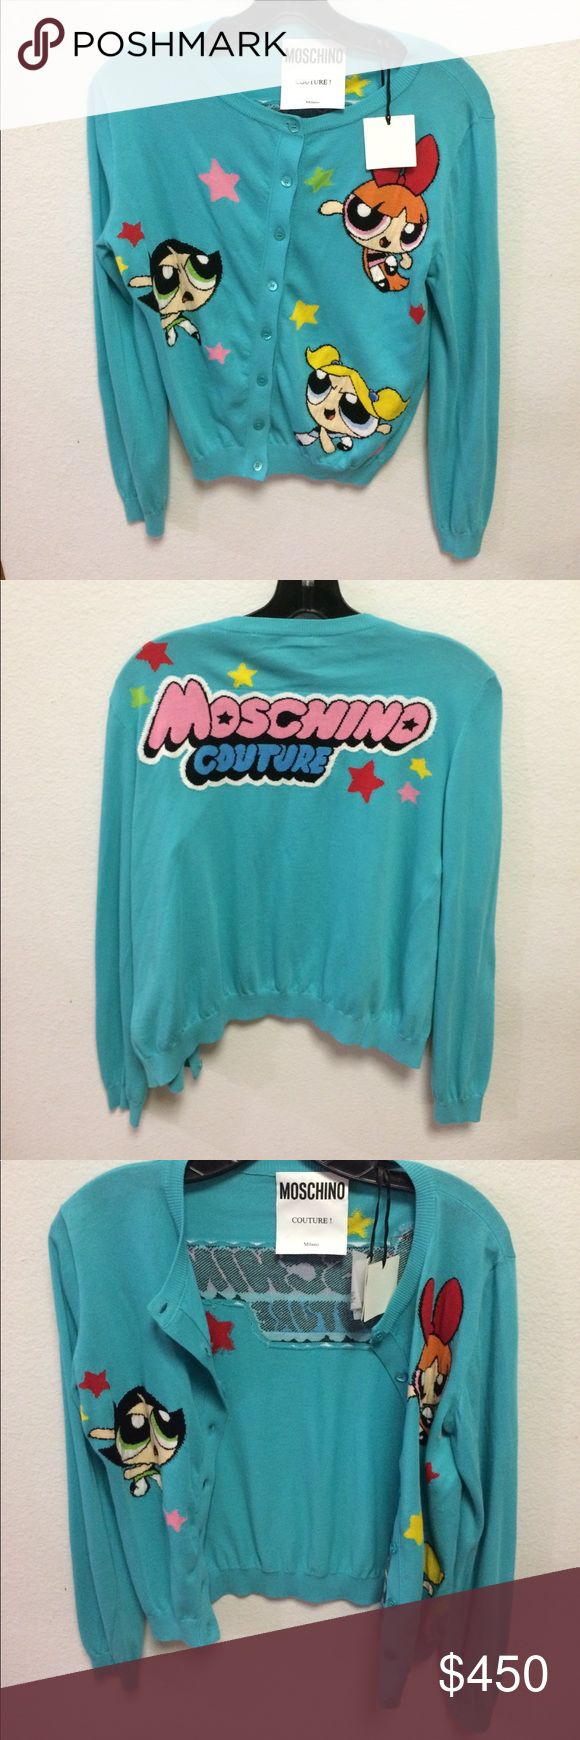 MOSCHINO Powerpuff Girls Cardigan Brand-new Moschino cardigan emblazoned with a playful and adorable Powerpuff Girls graphic on the front, and a show-typical lettering of the brand name on the back! Darker teal color, fine cotton knit. Show off your love for everyone's favorite superpowered girls any season! Moschino Sweaters Cardigans